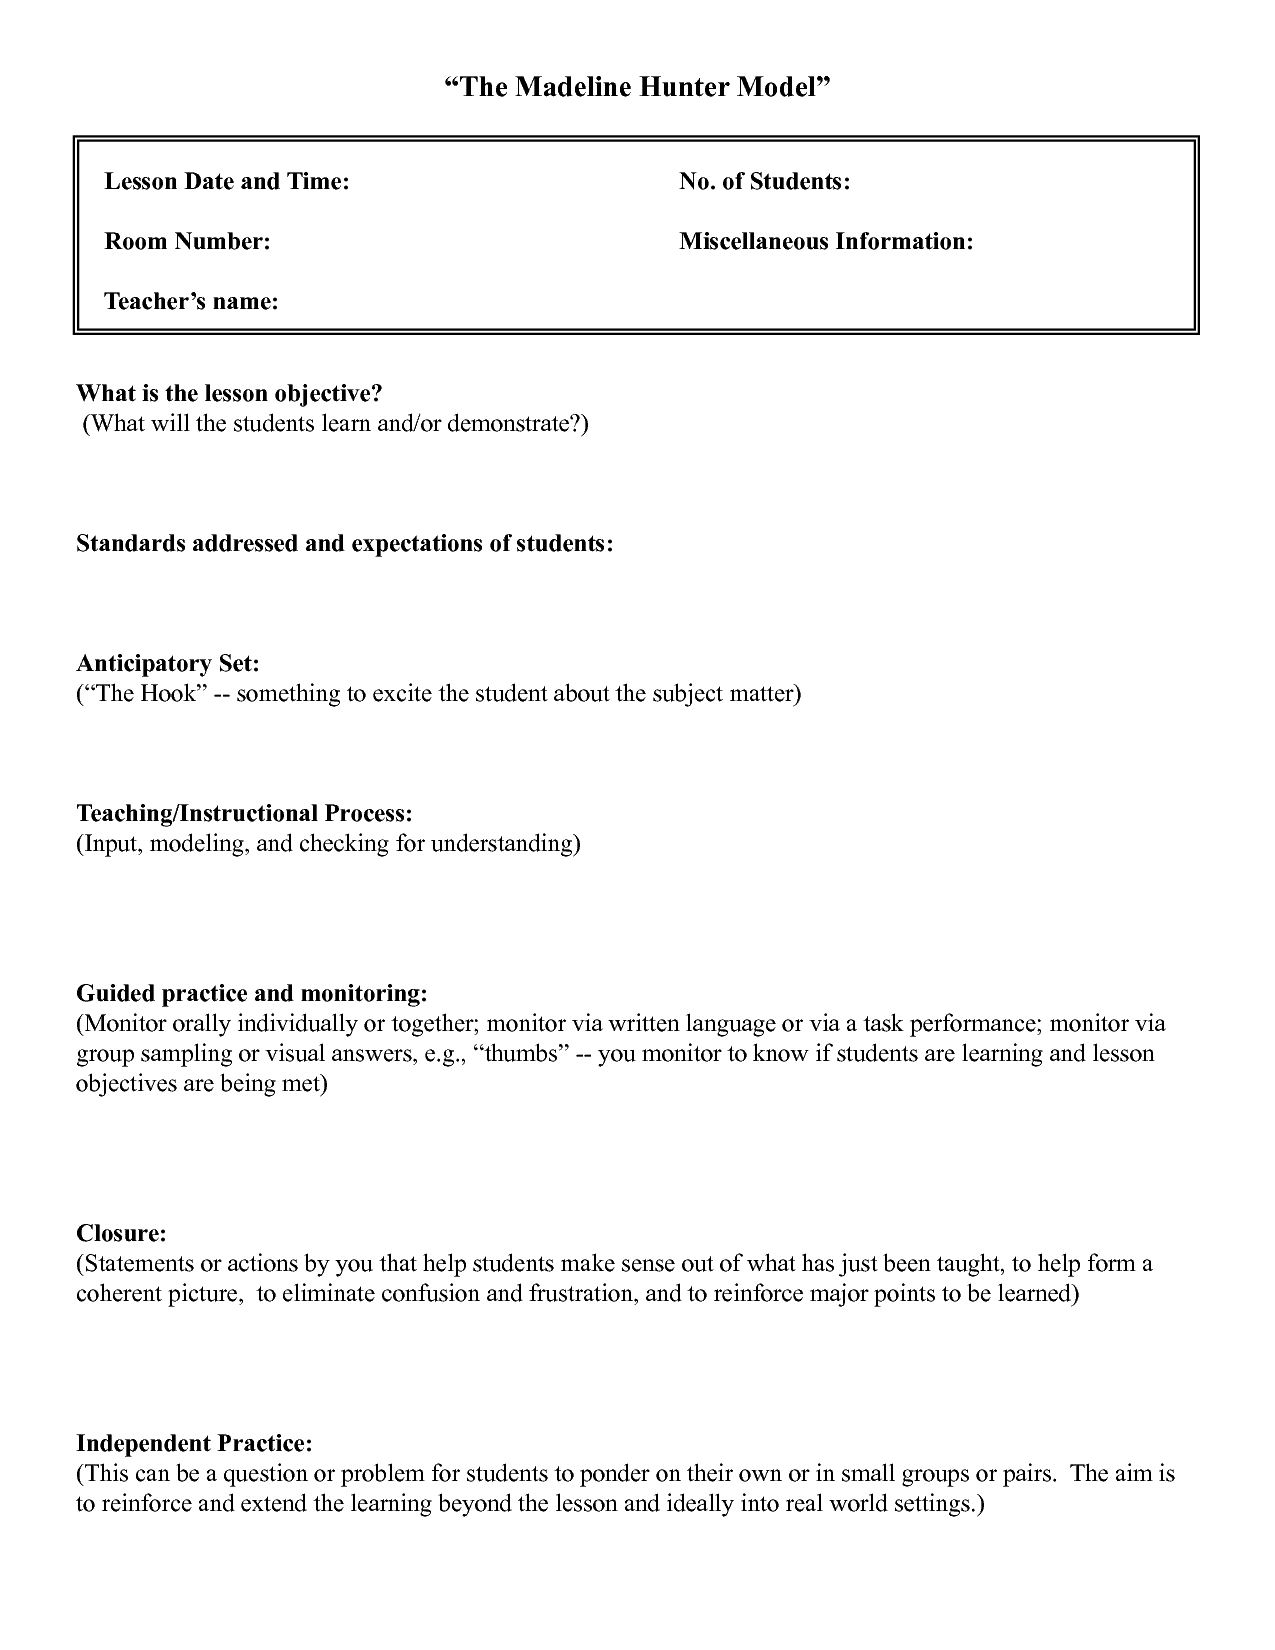 Madeline Hunter Lesson Plan Template Twiroo Com Lesson Plan - Madeline hunter lesson plan blank template